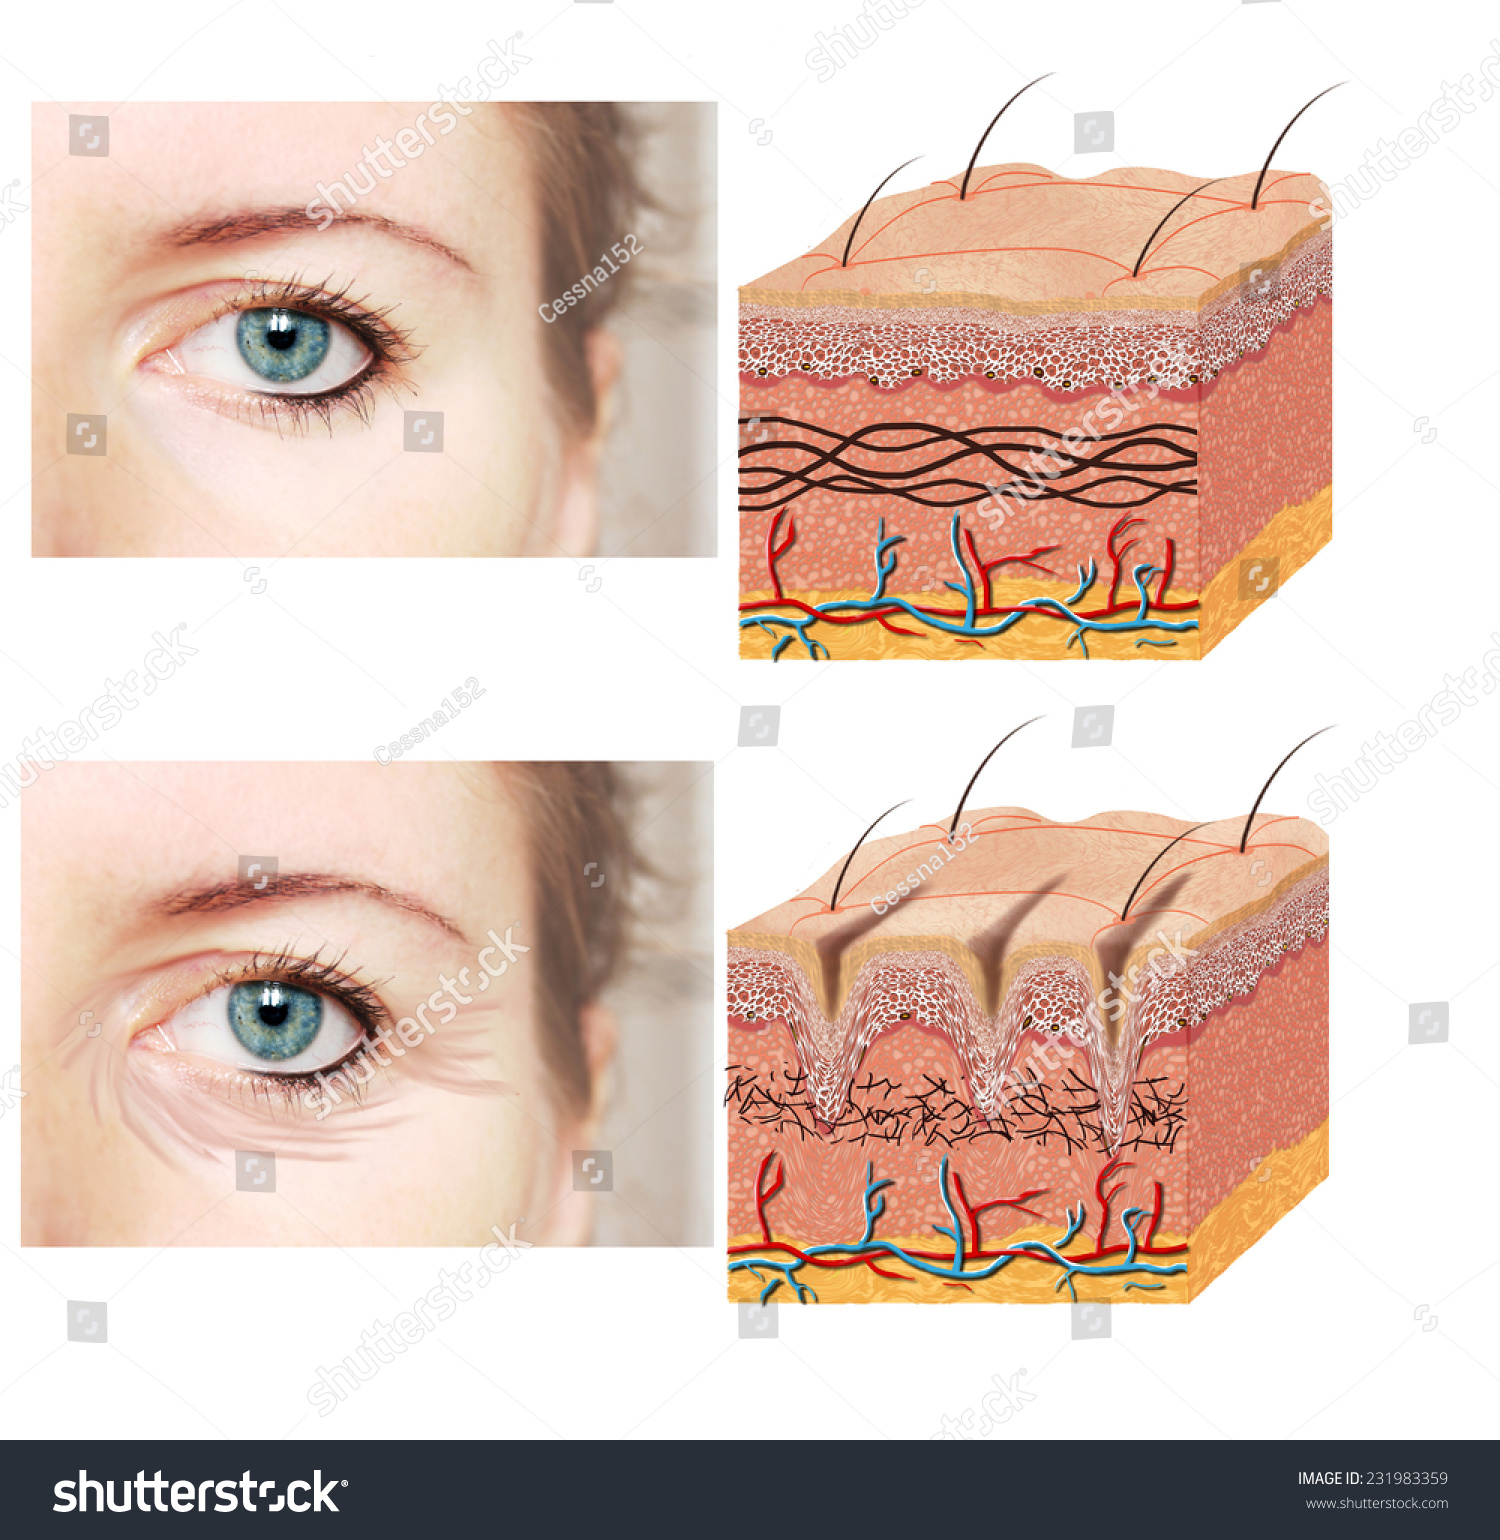 Skin Anatomy Diagram Younger Older Skin Comparation Stock Photo